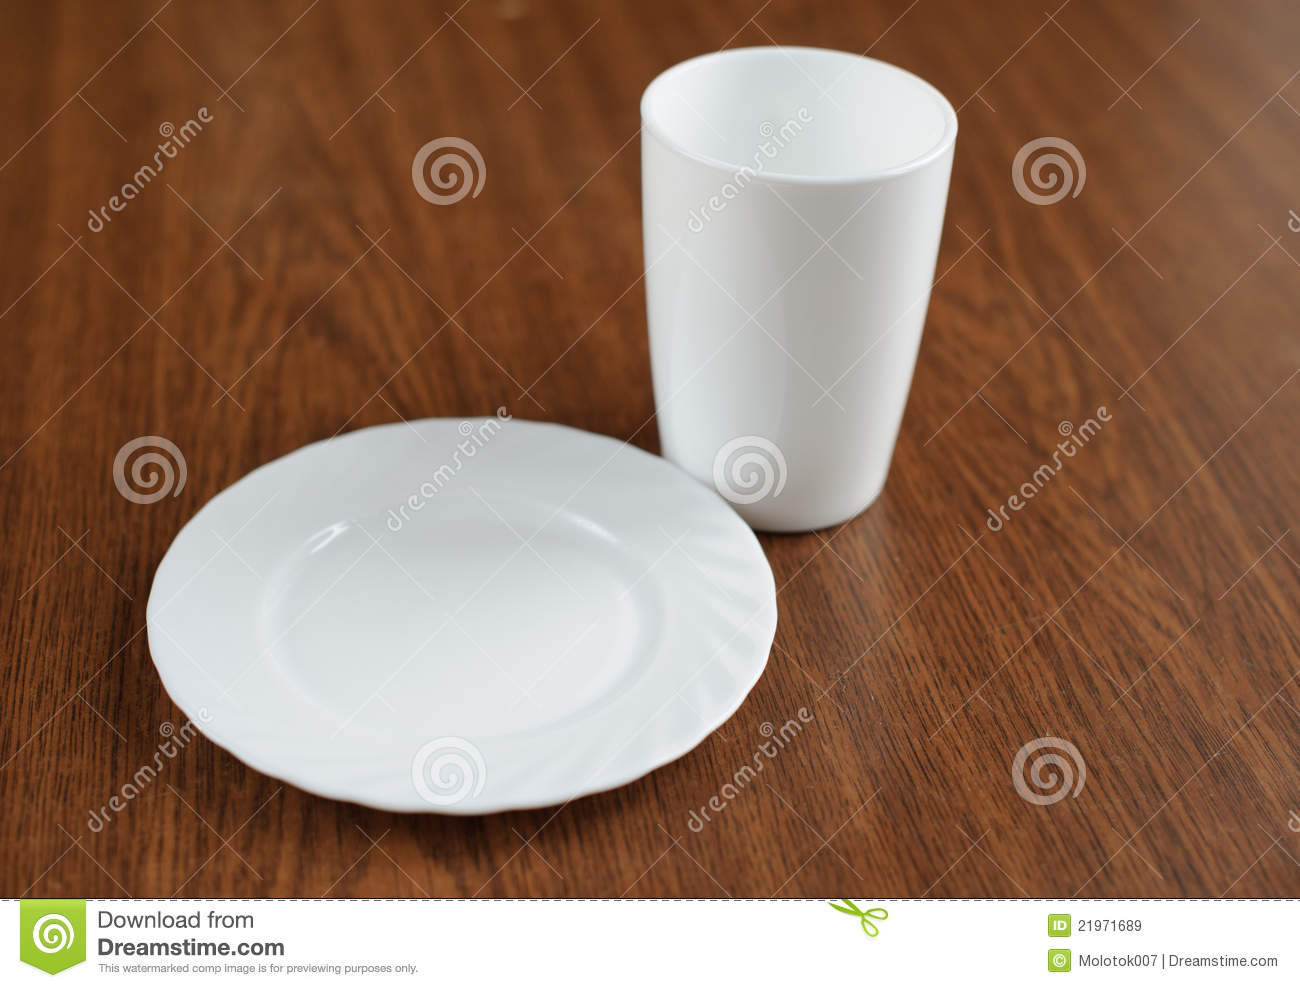 Empty Plate And Glass On A Table Royalty Free Stock Images